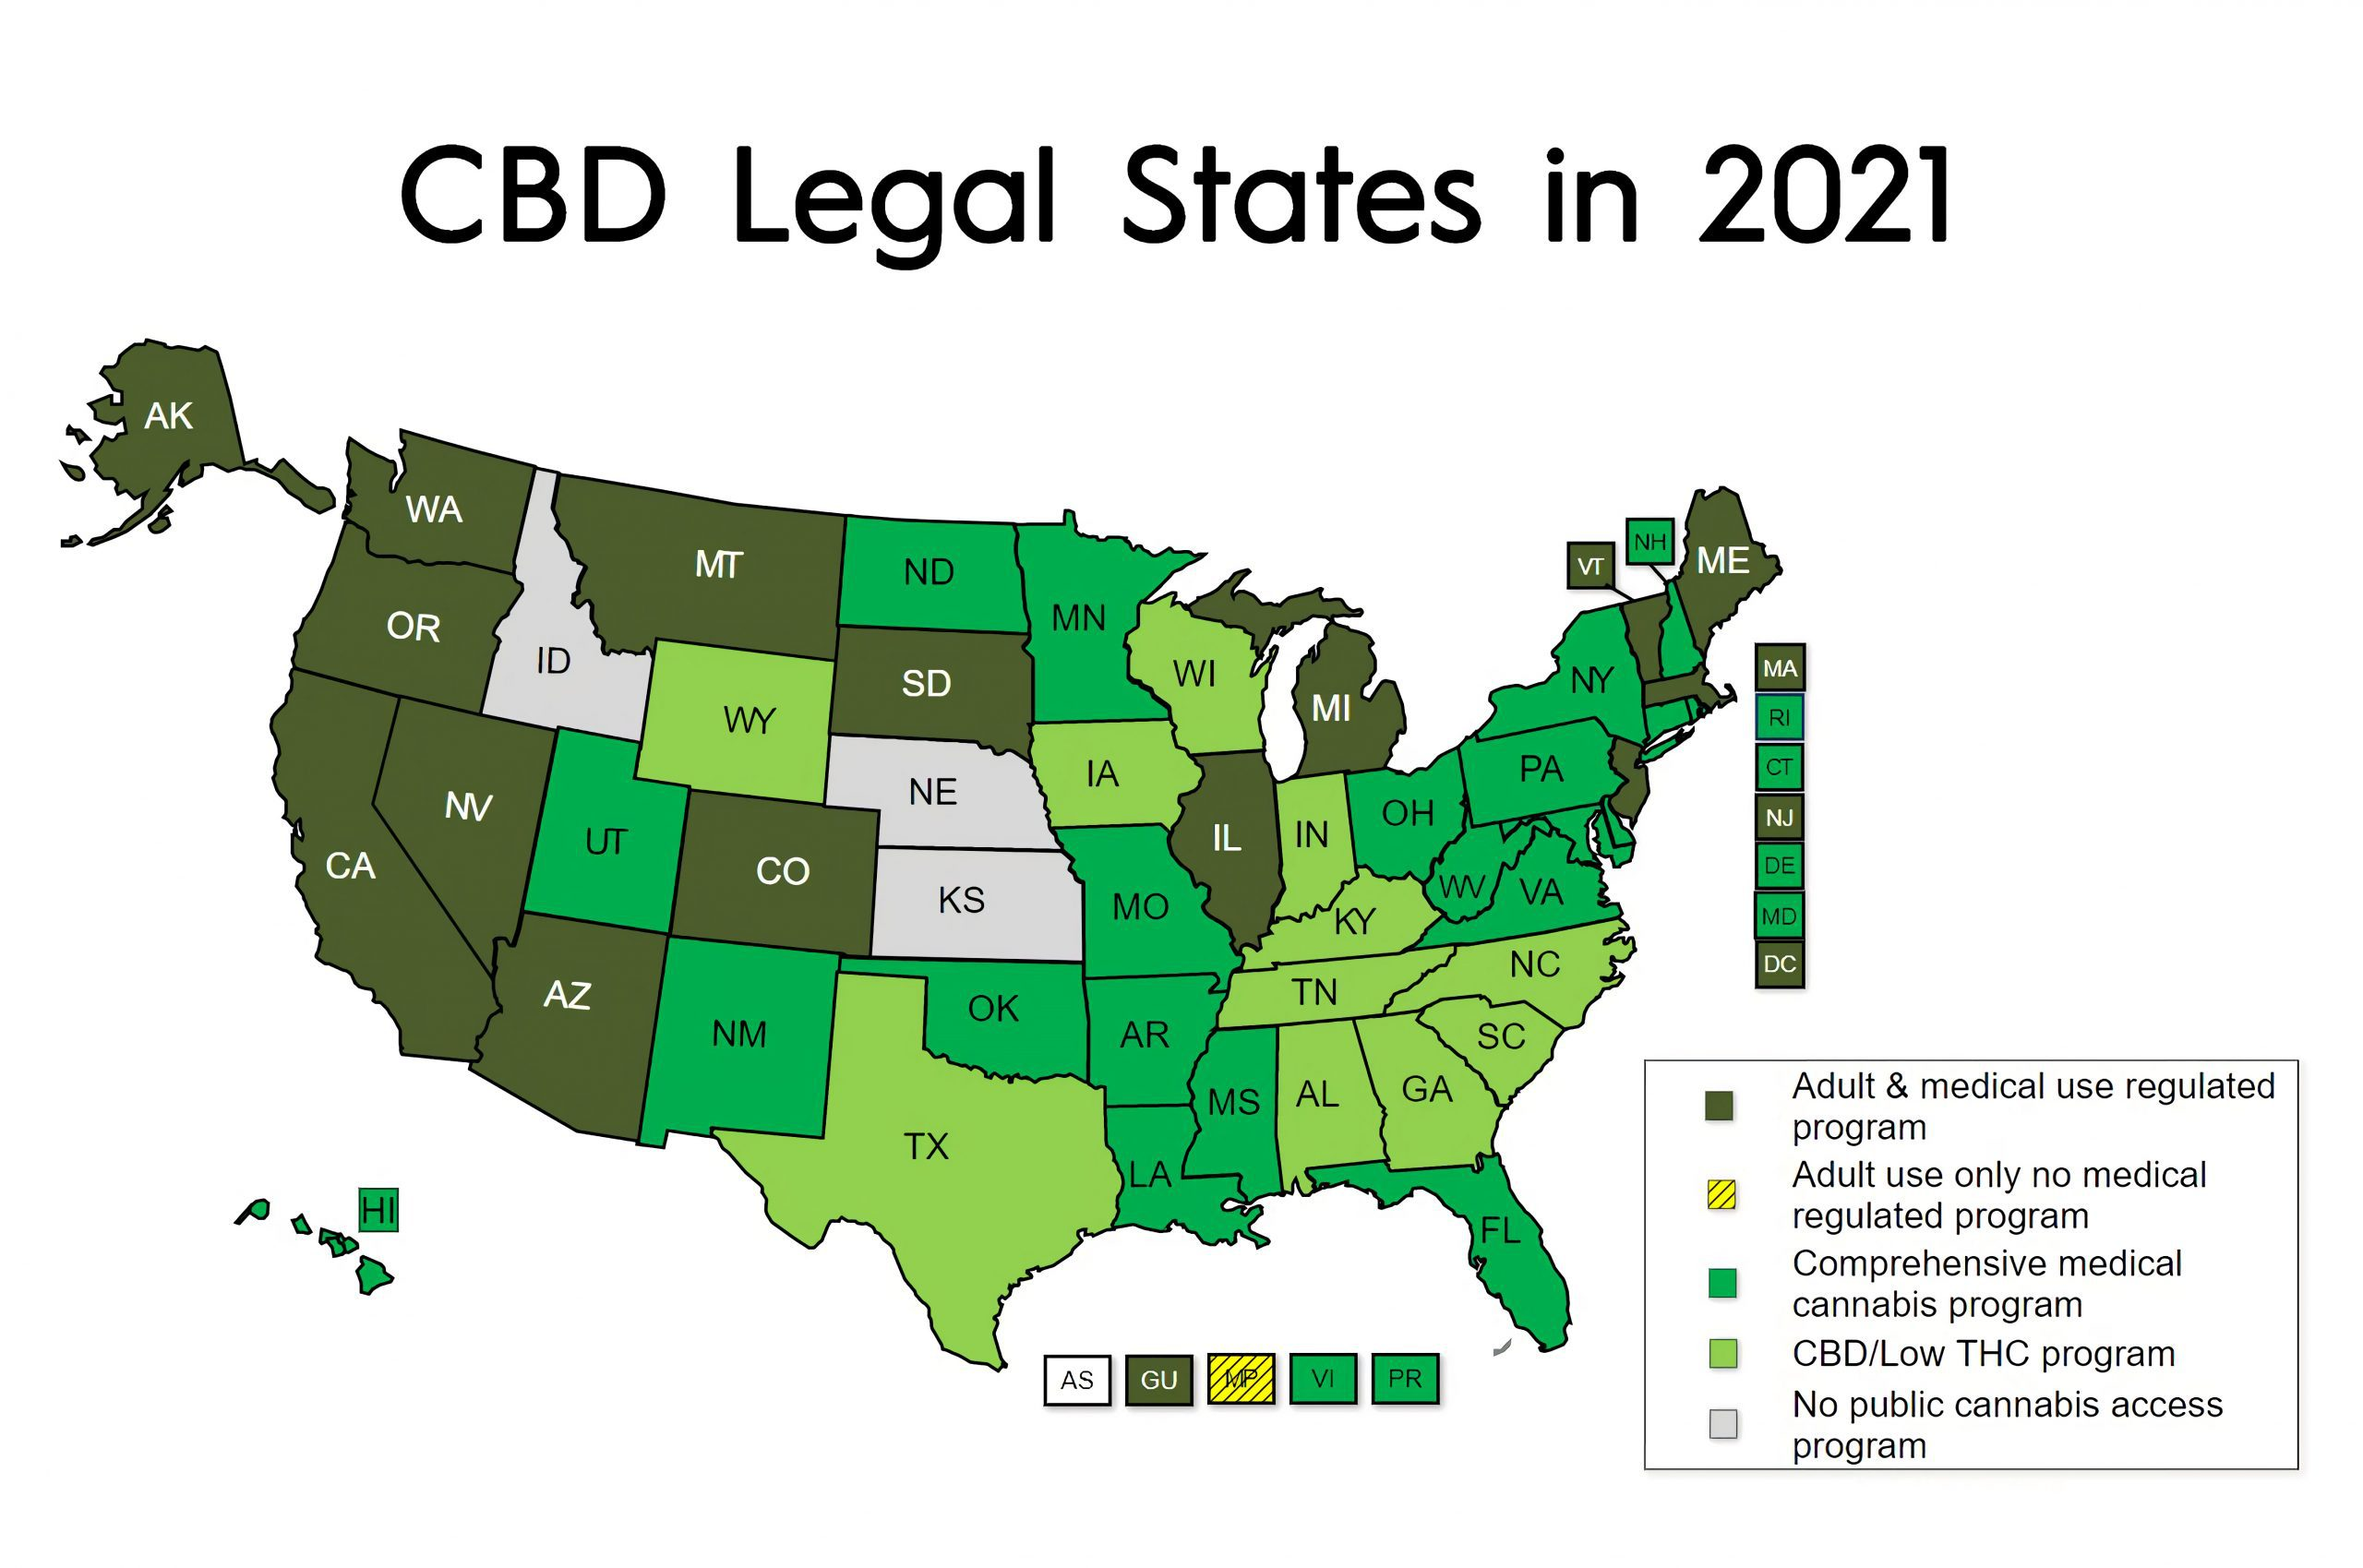 Map of CBD Legality in All States of America in 2021